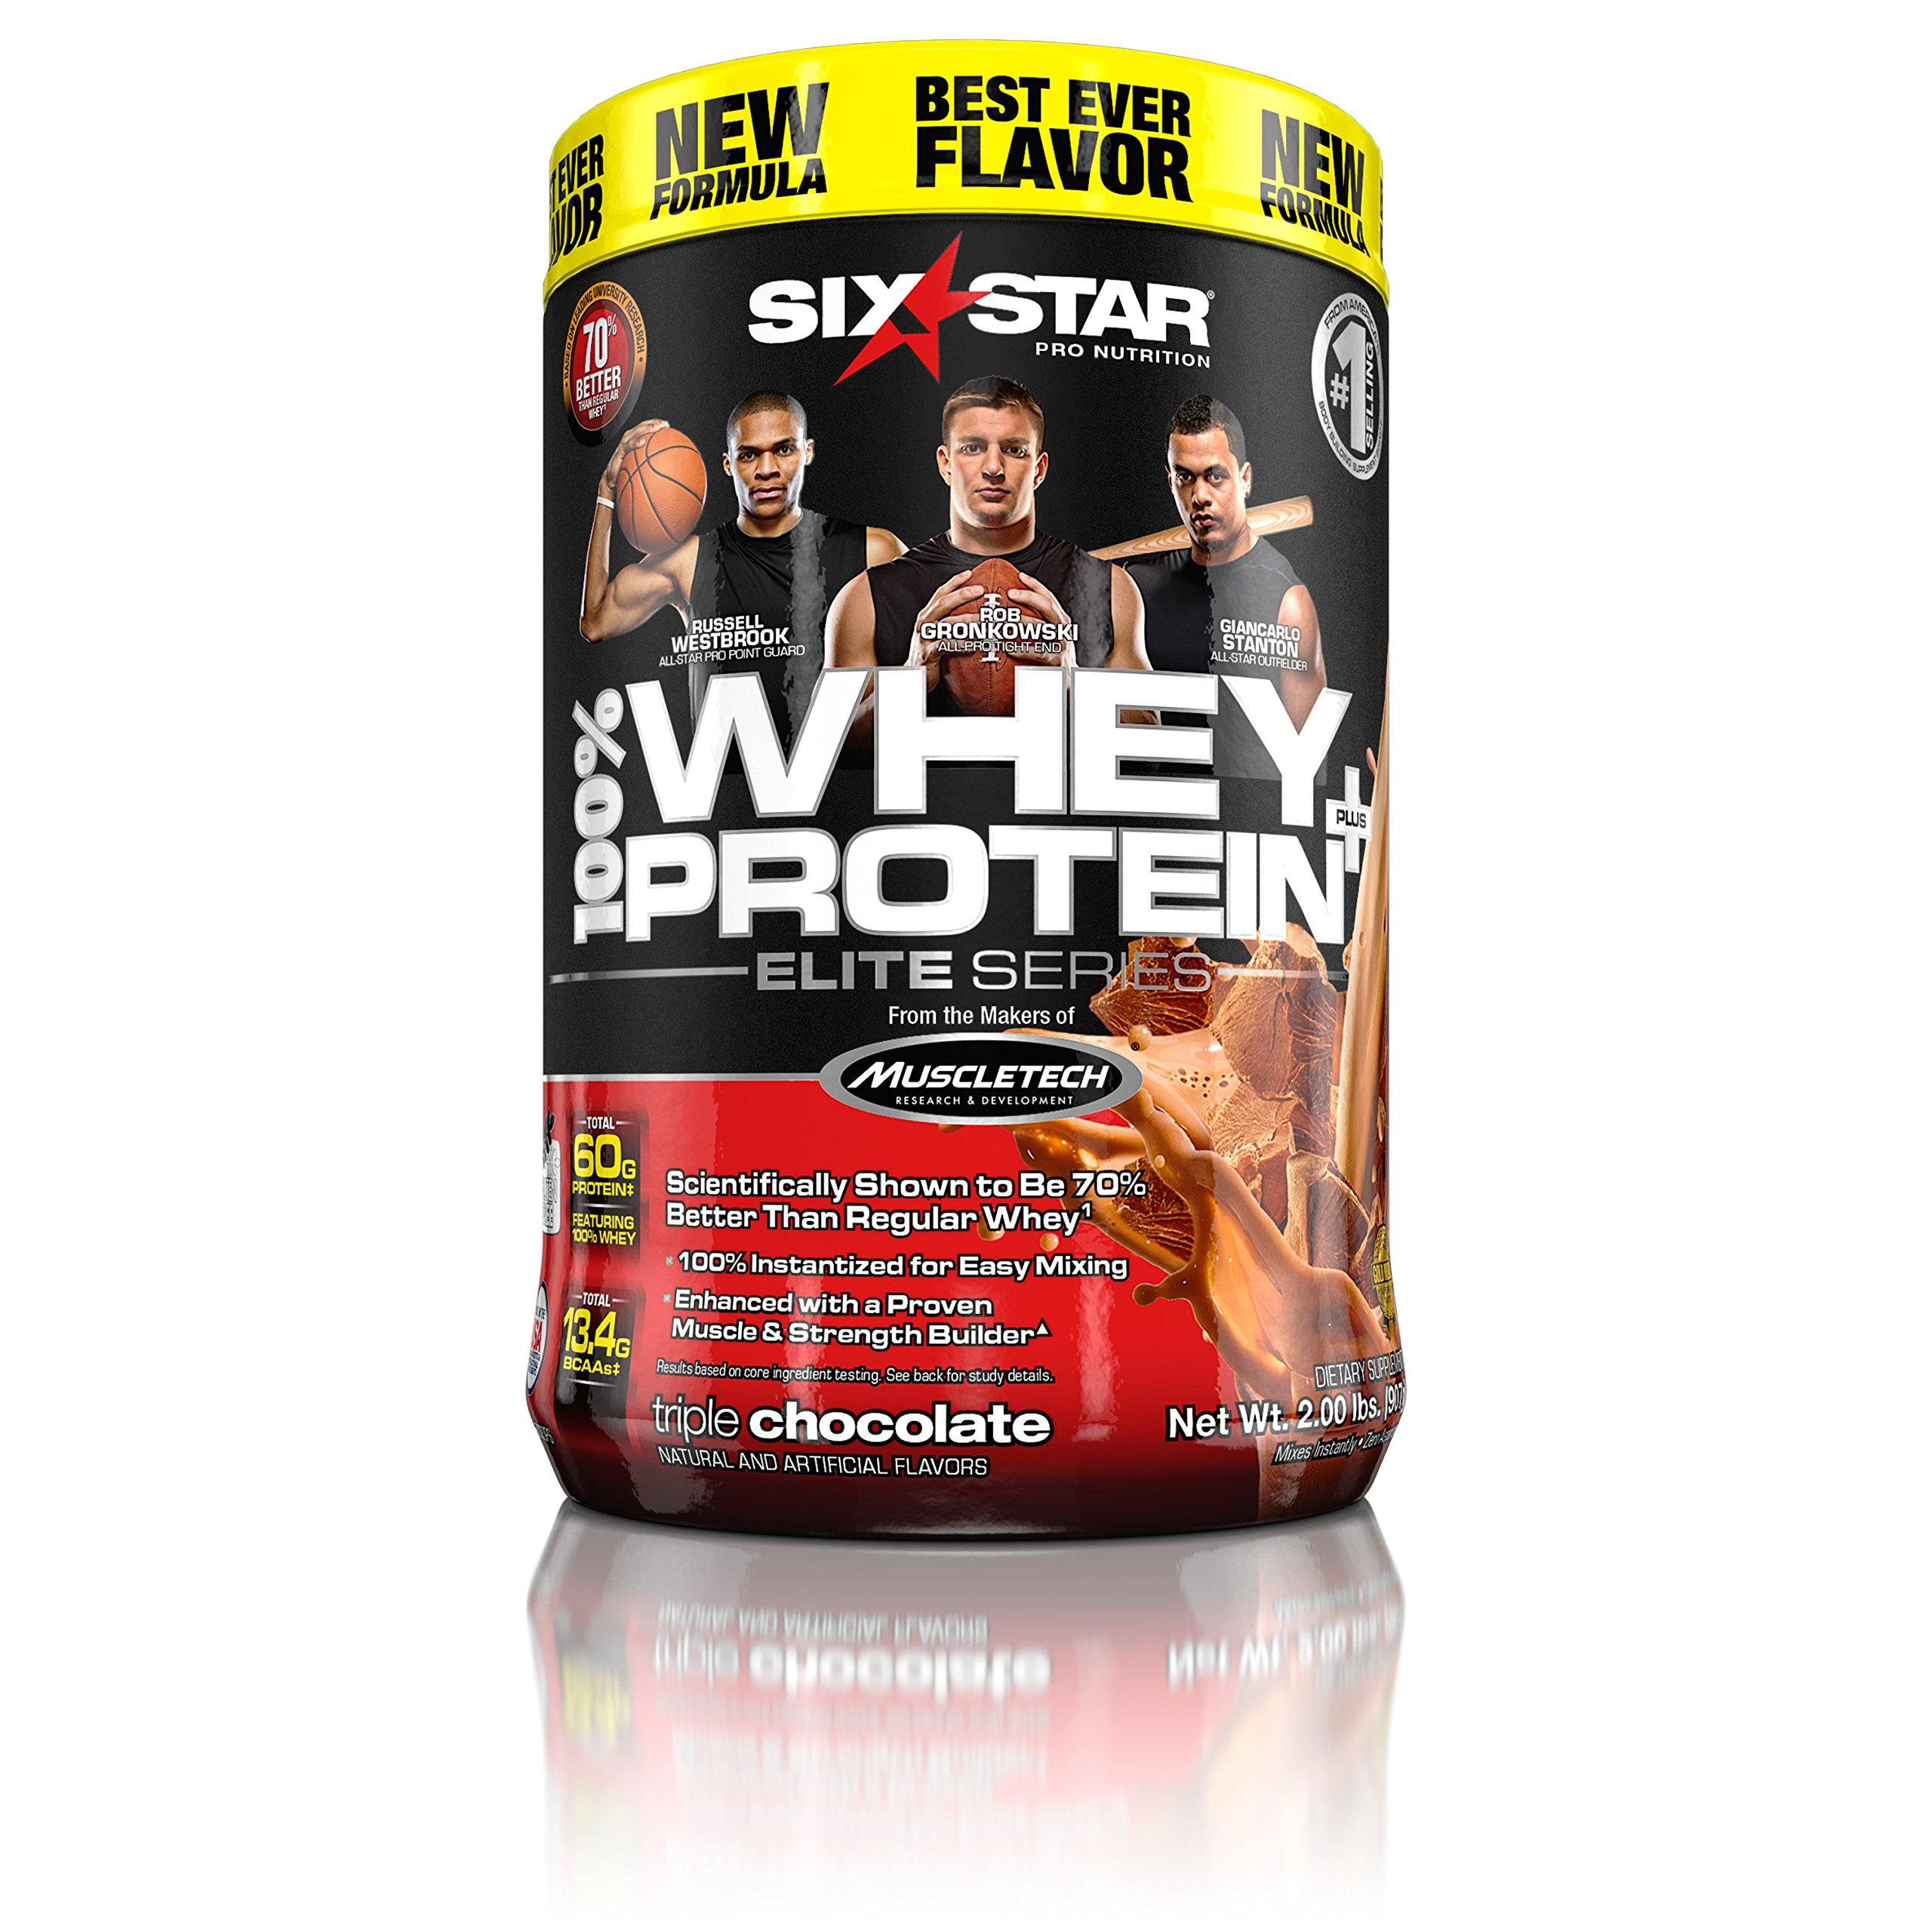 Six Star Pro Nutrition 100% Whey Protein Plus, 32g Ultra-Pure Whey Protein Powder, Triple Chocolate, 2 Pound